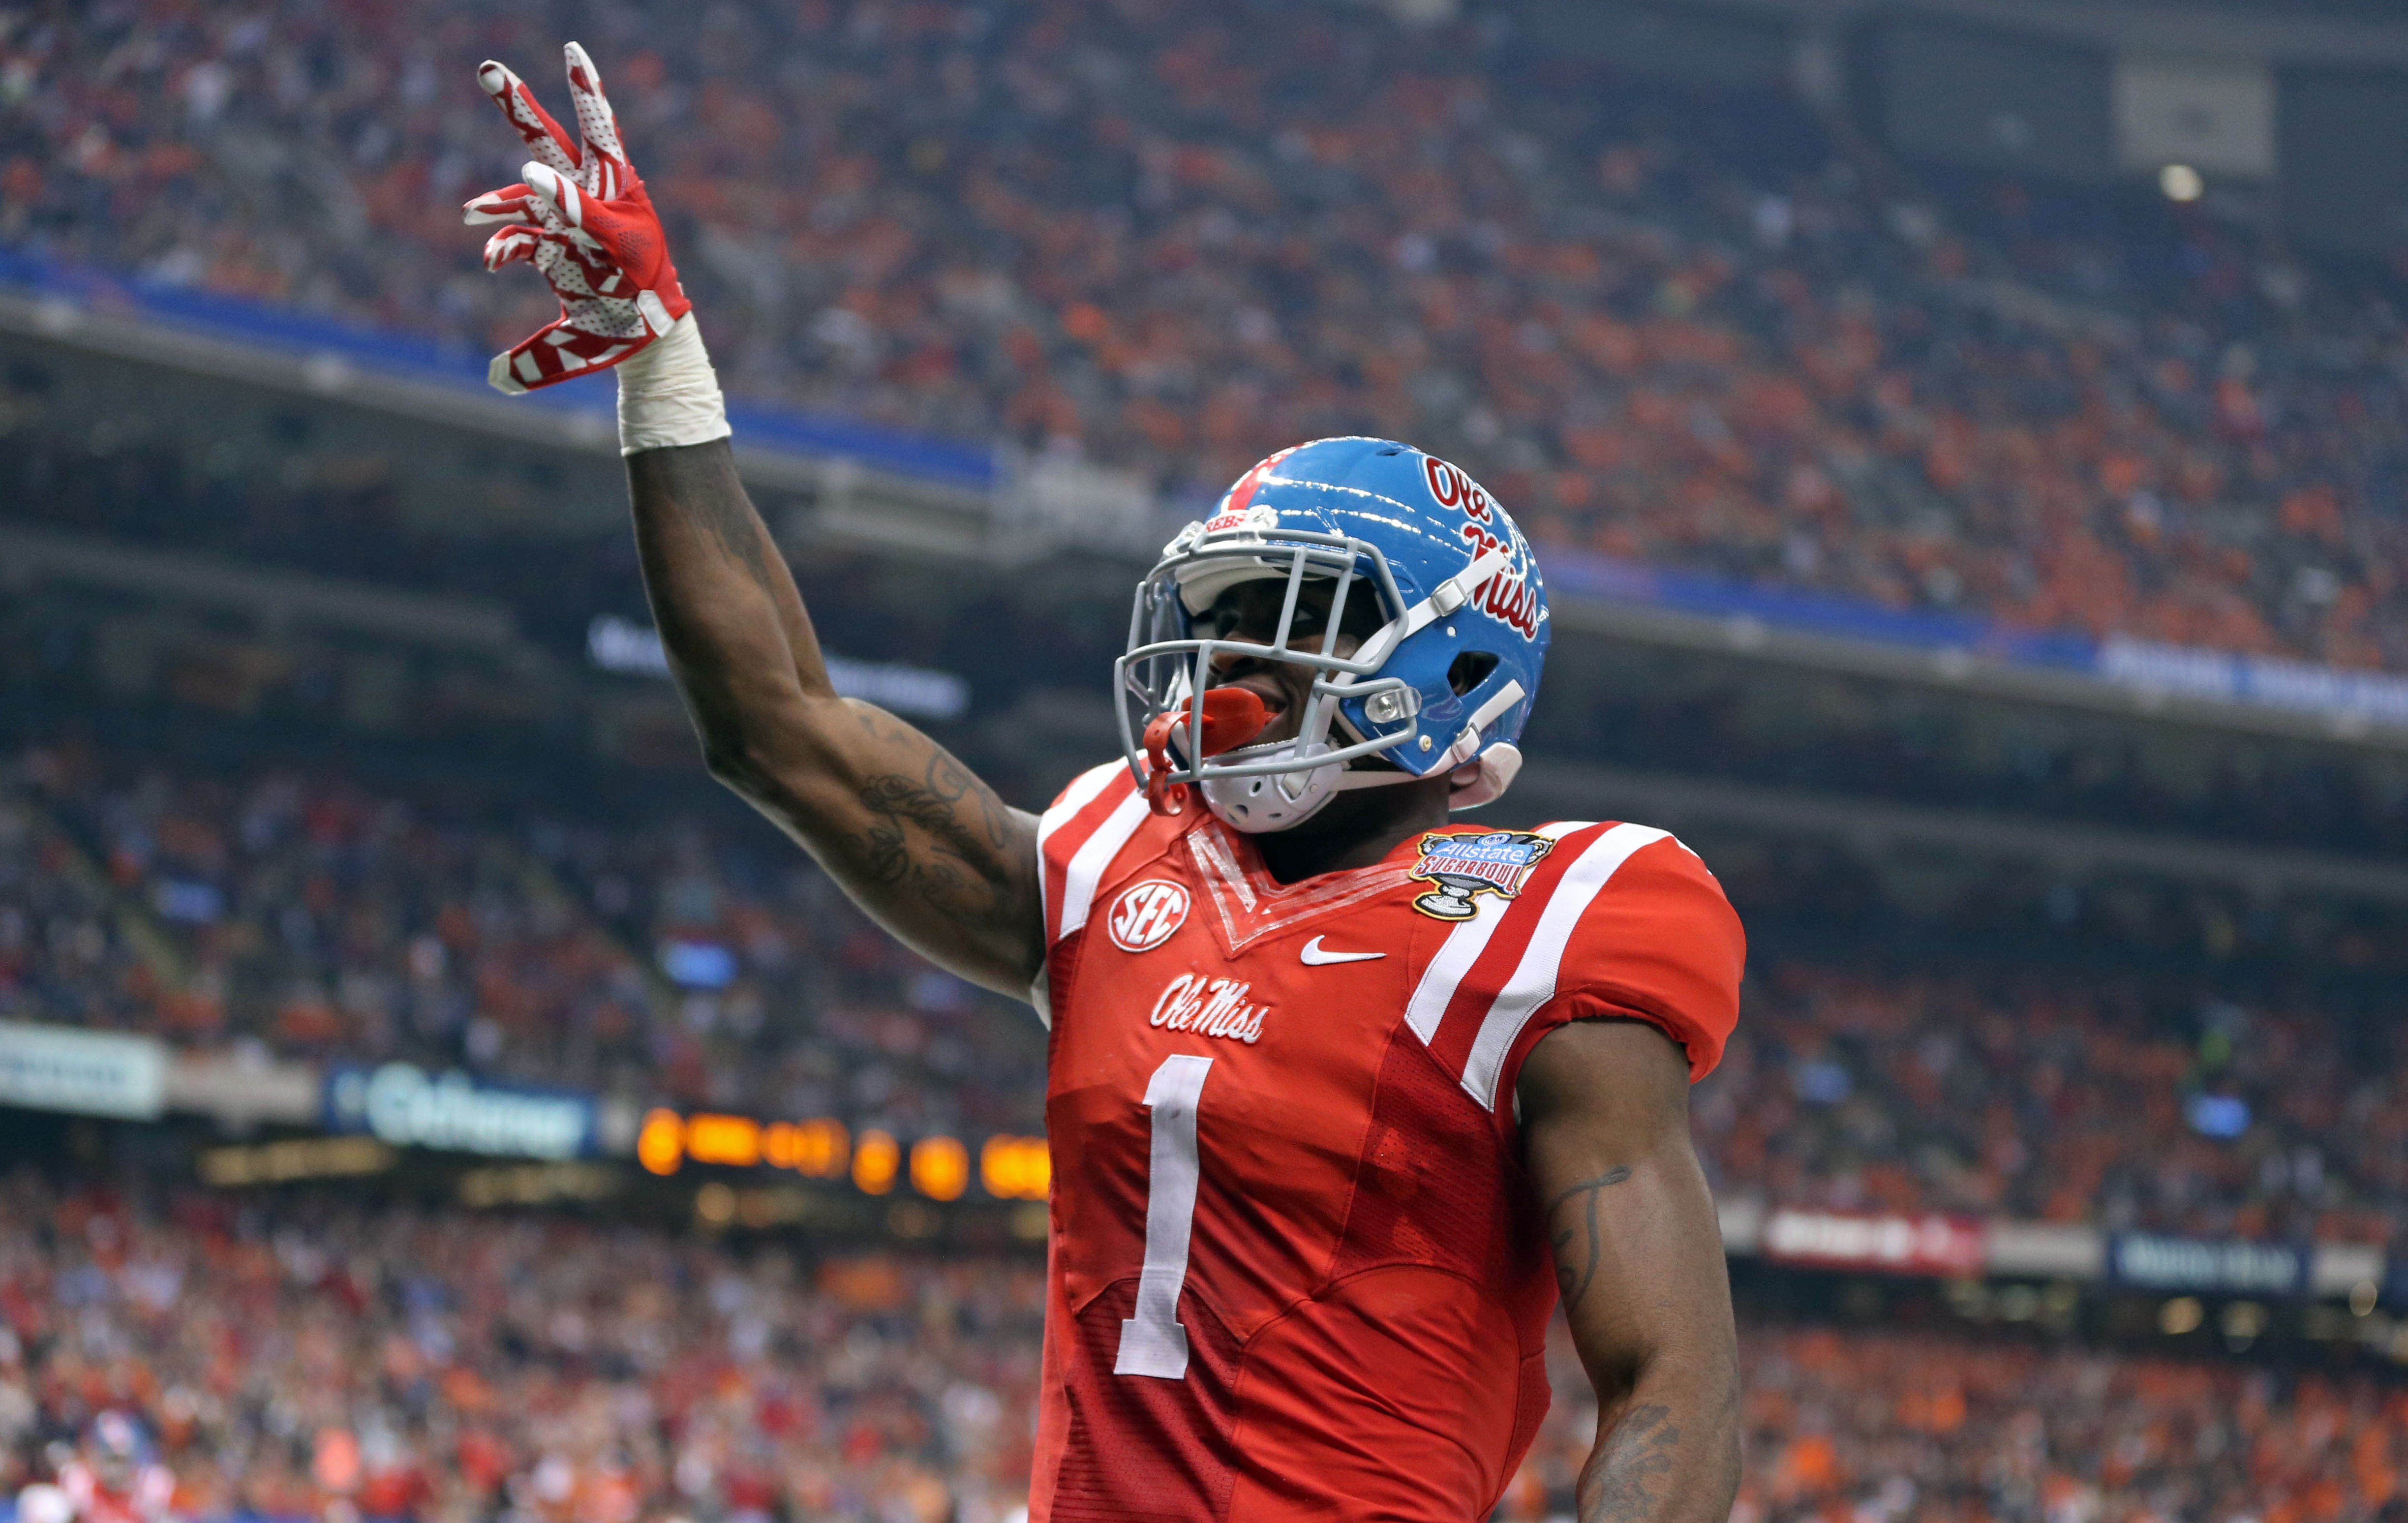 Jan 1, 2016; New Orleans, LA, USA; Mississippi Rebels wide receiver Laquon Treadwell (1) celebrates his ten-yard touchdown catch against the Oklahoma State Cowboys in the second quarter of the 2016 Sugar Bowl at the Mercedes-Benz Superdome. Mandatory Credit: Chuck Cook-USA TODAY Sports